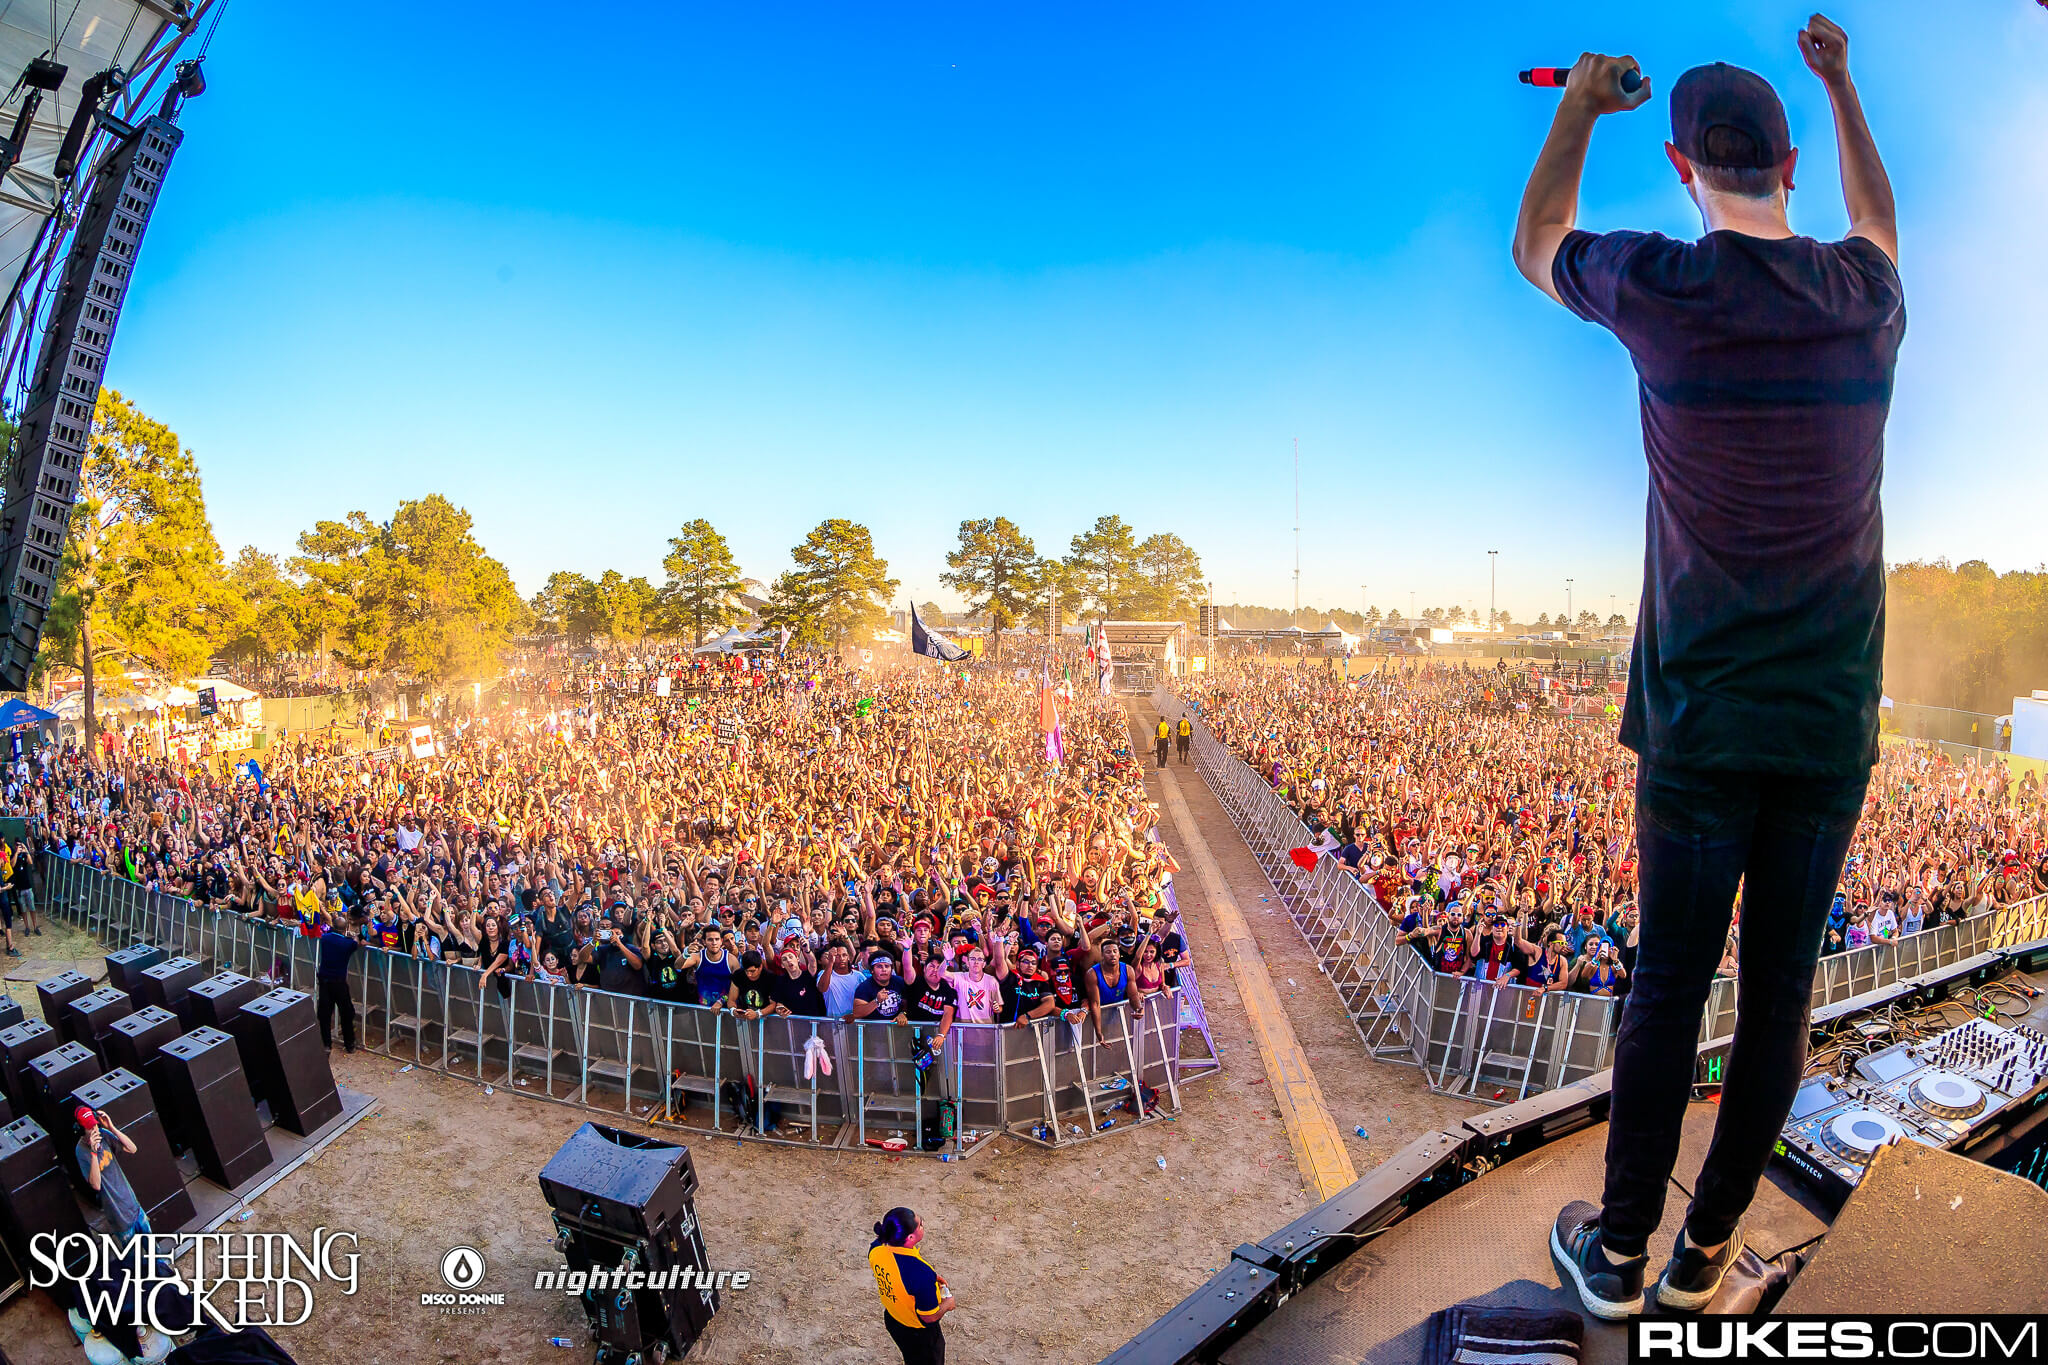 Borgeous performing at Something Wicked. Photo by Rukes.